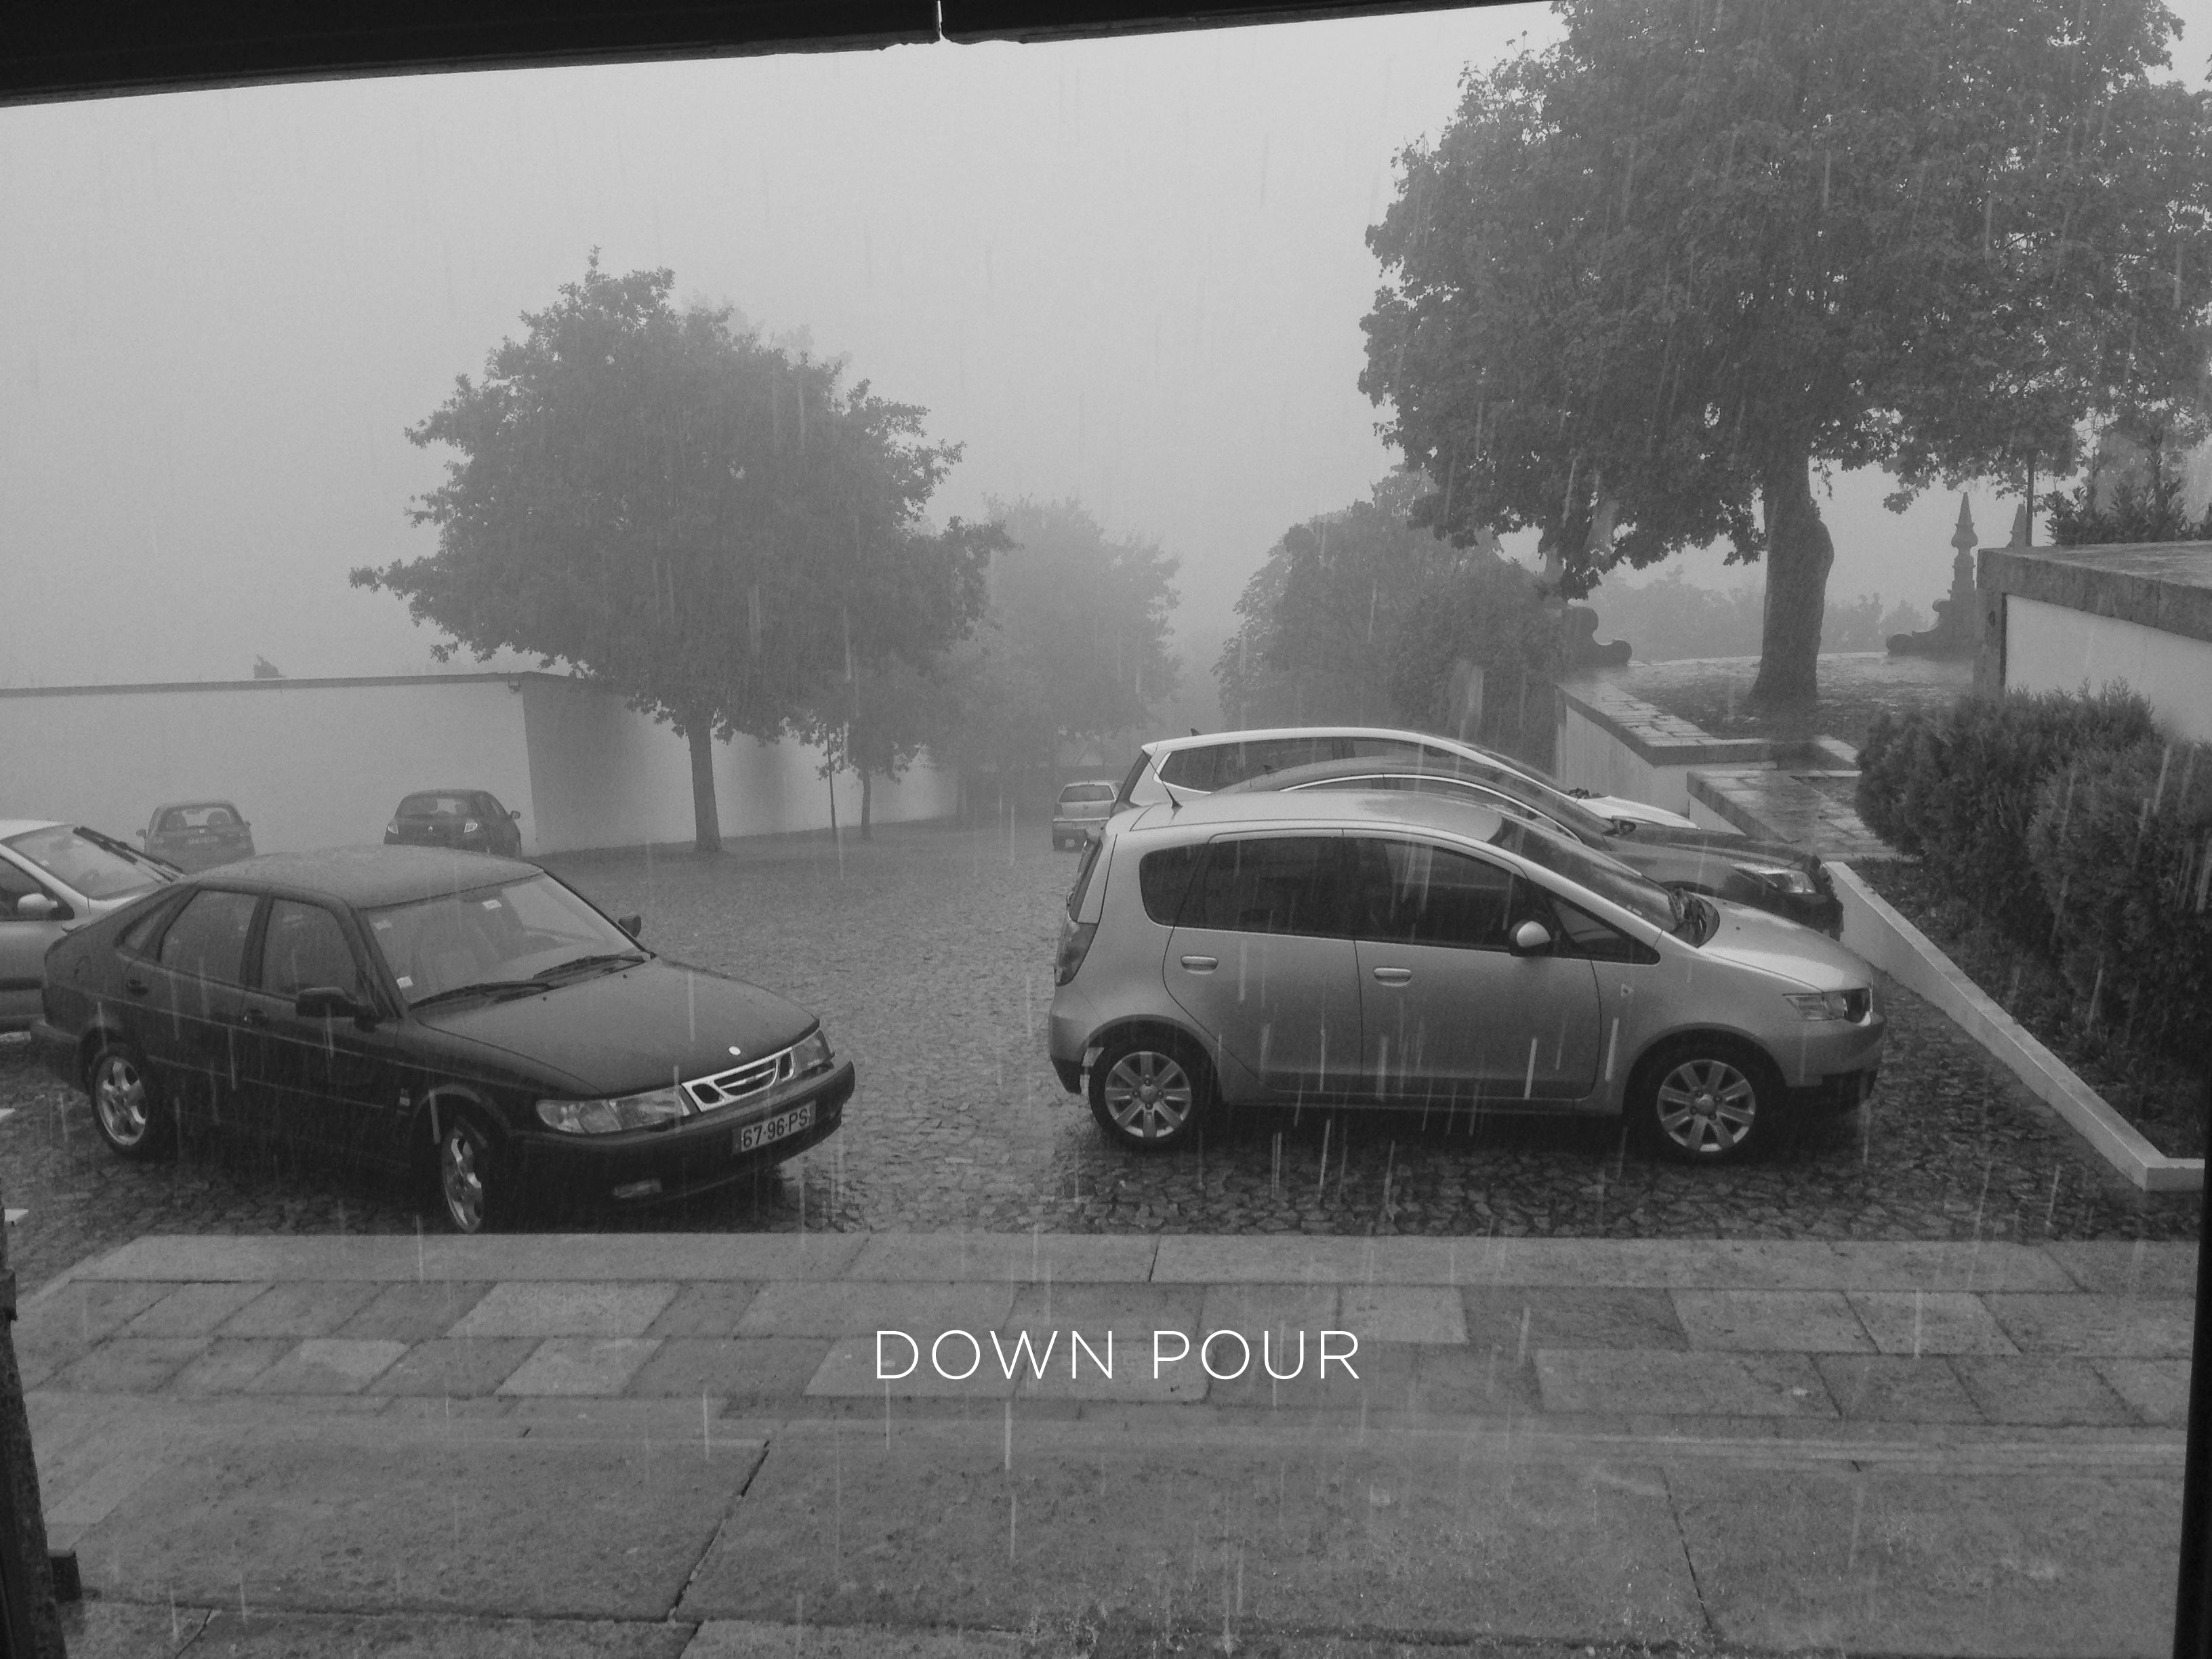 A down pour in the parking lot in Portugal